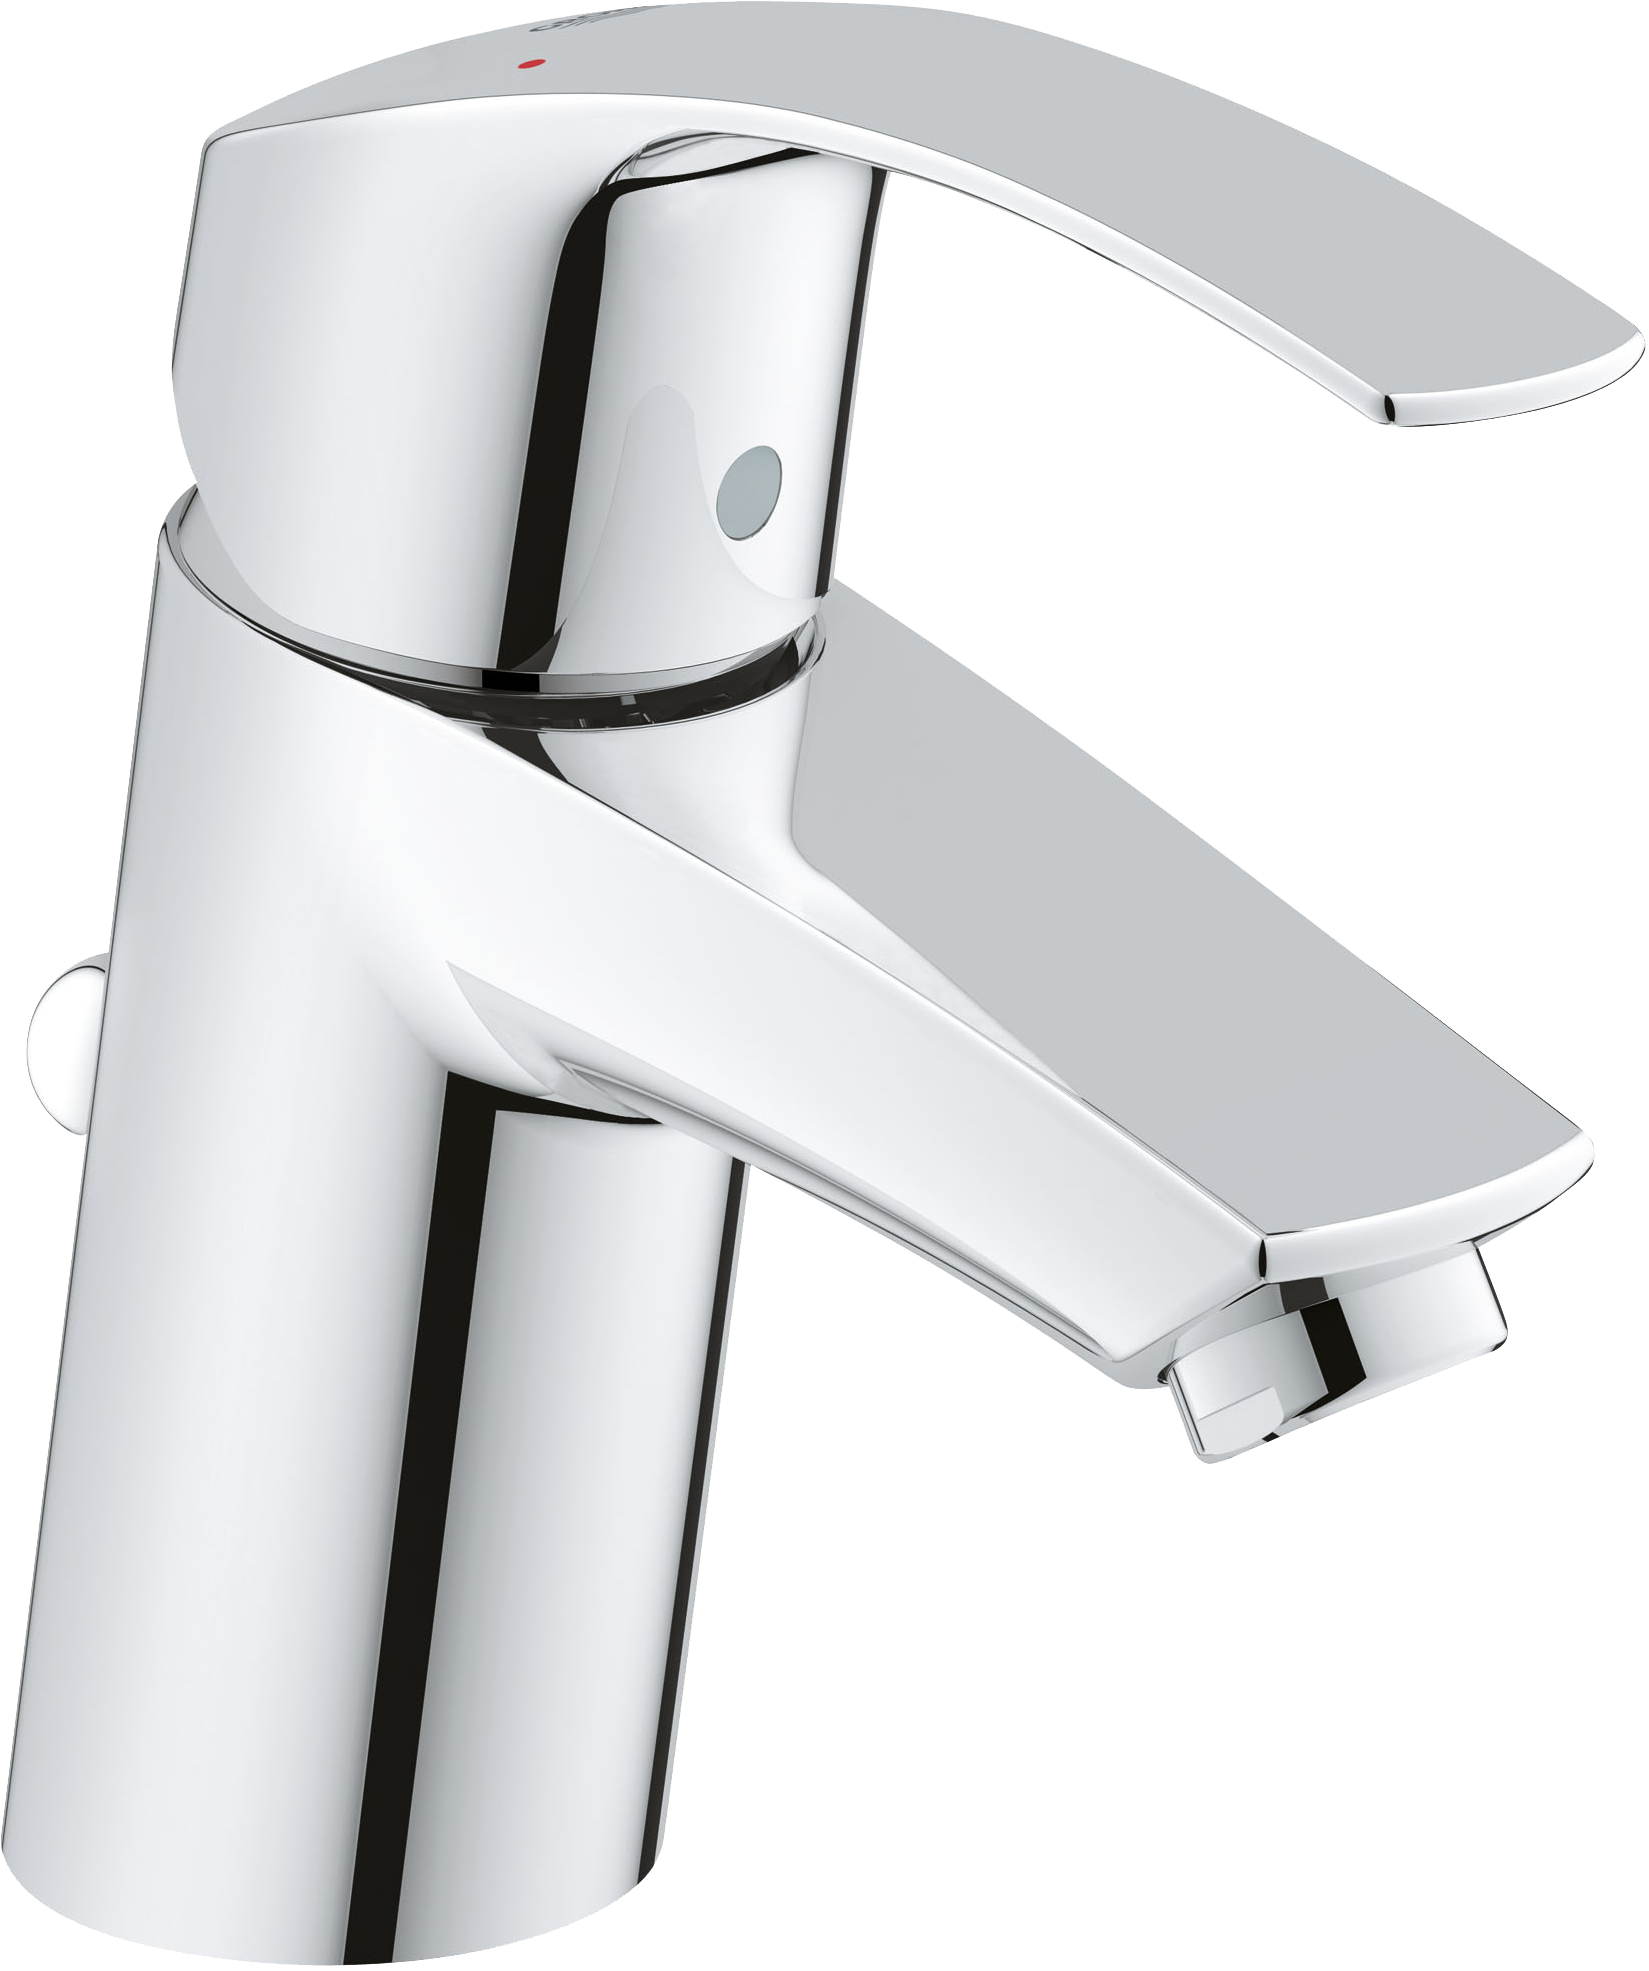 Grohe Eurosmart Basin Mixer Tap With Pop Up Waste Bathroom Sink Faucets Chrome Single Hole Bathroom Faucet Low Arc Bathroom Faucet